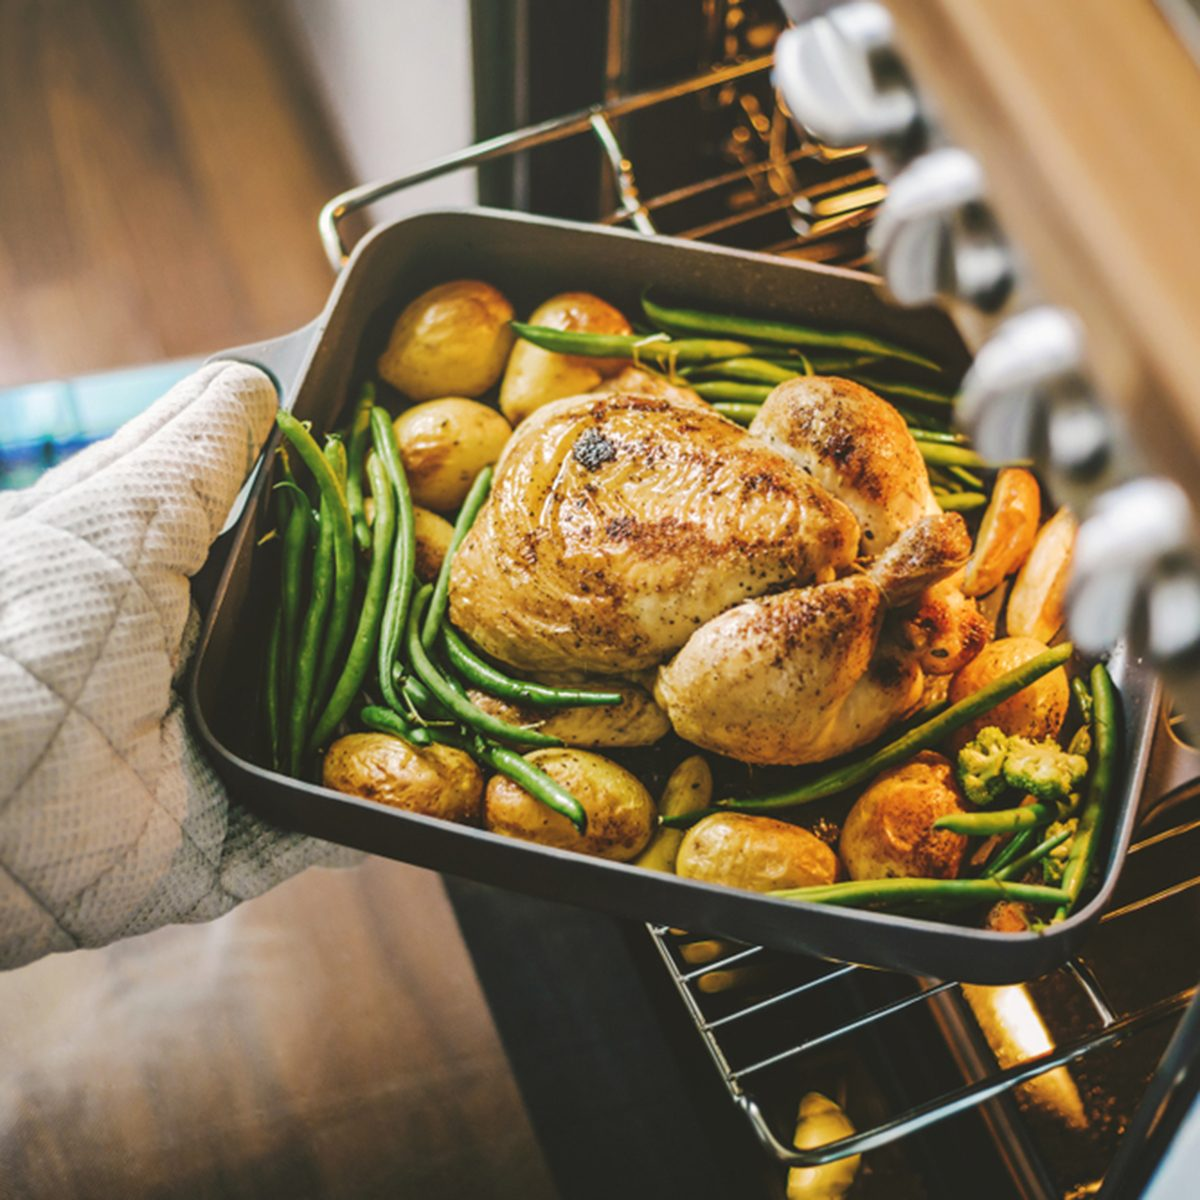 Cook taking ready fried baked chicken with vegetables from the oven. Home cooking concept. ; Shutterstock ID 1175873314; Job (TFH, TOH, RD, BNB, CWM, CM): TOH